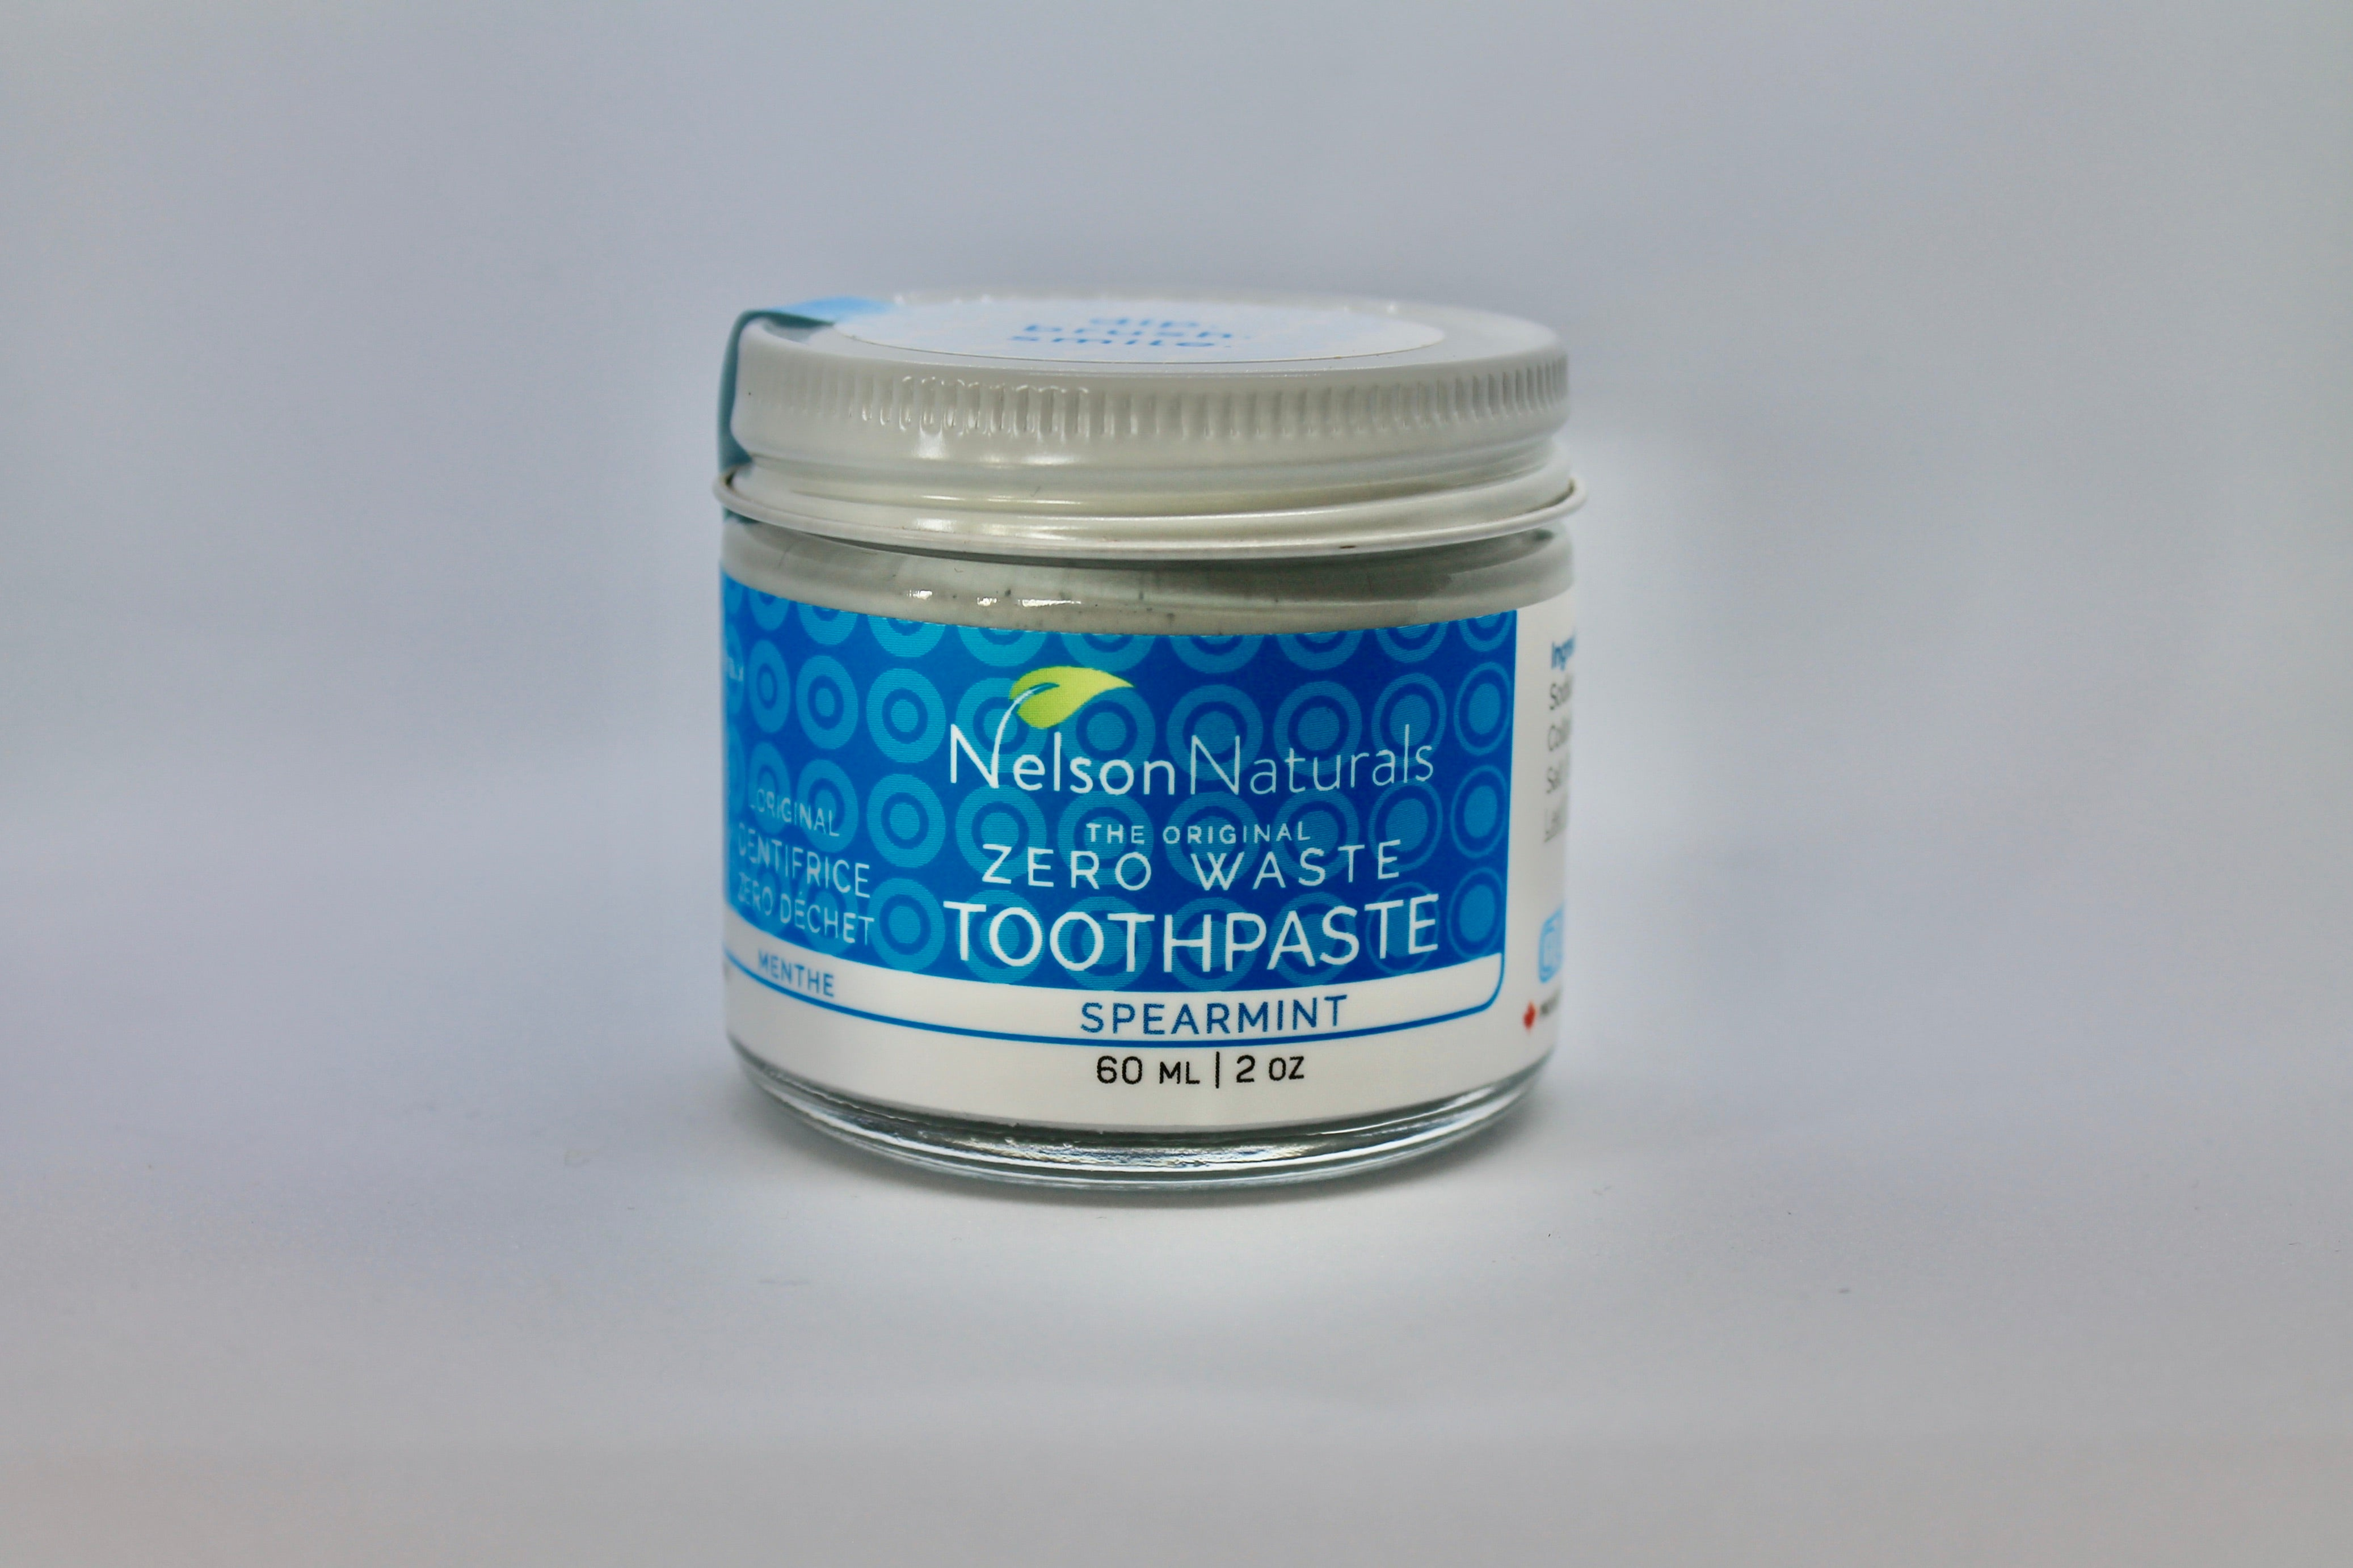 Nelson Naturals Toothpaste